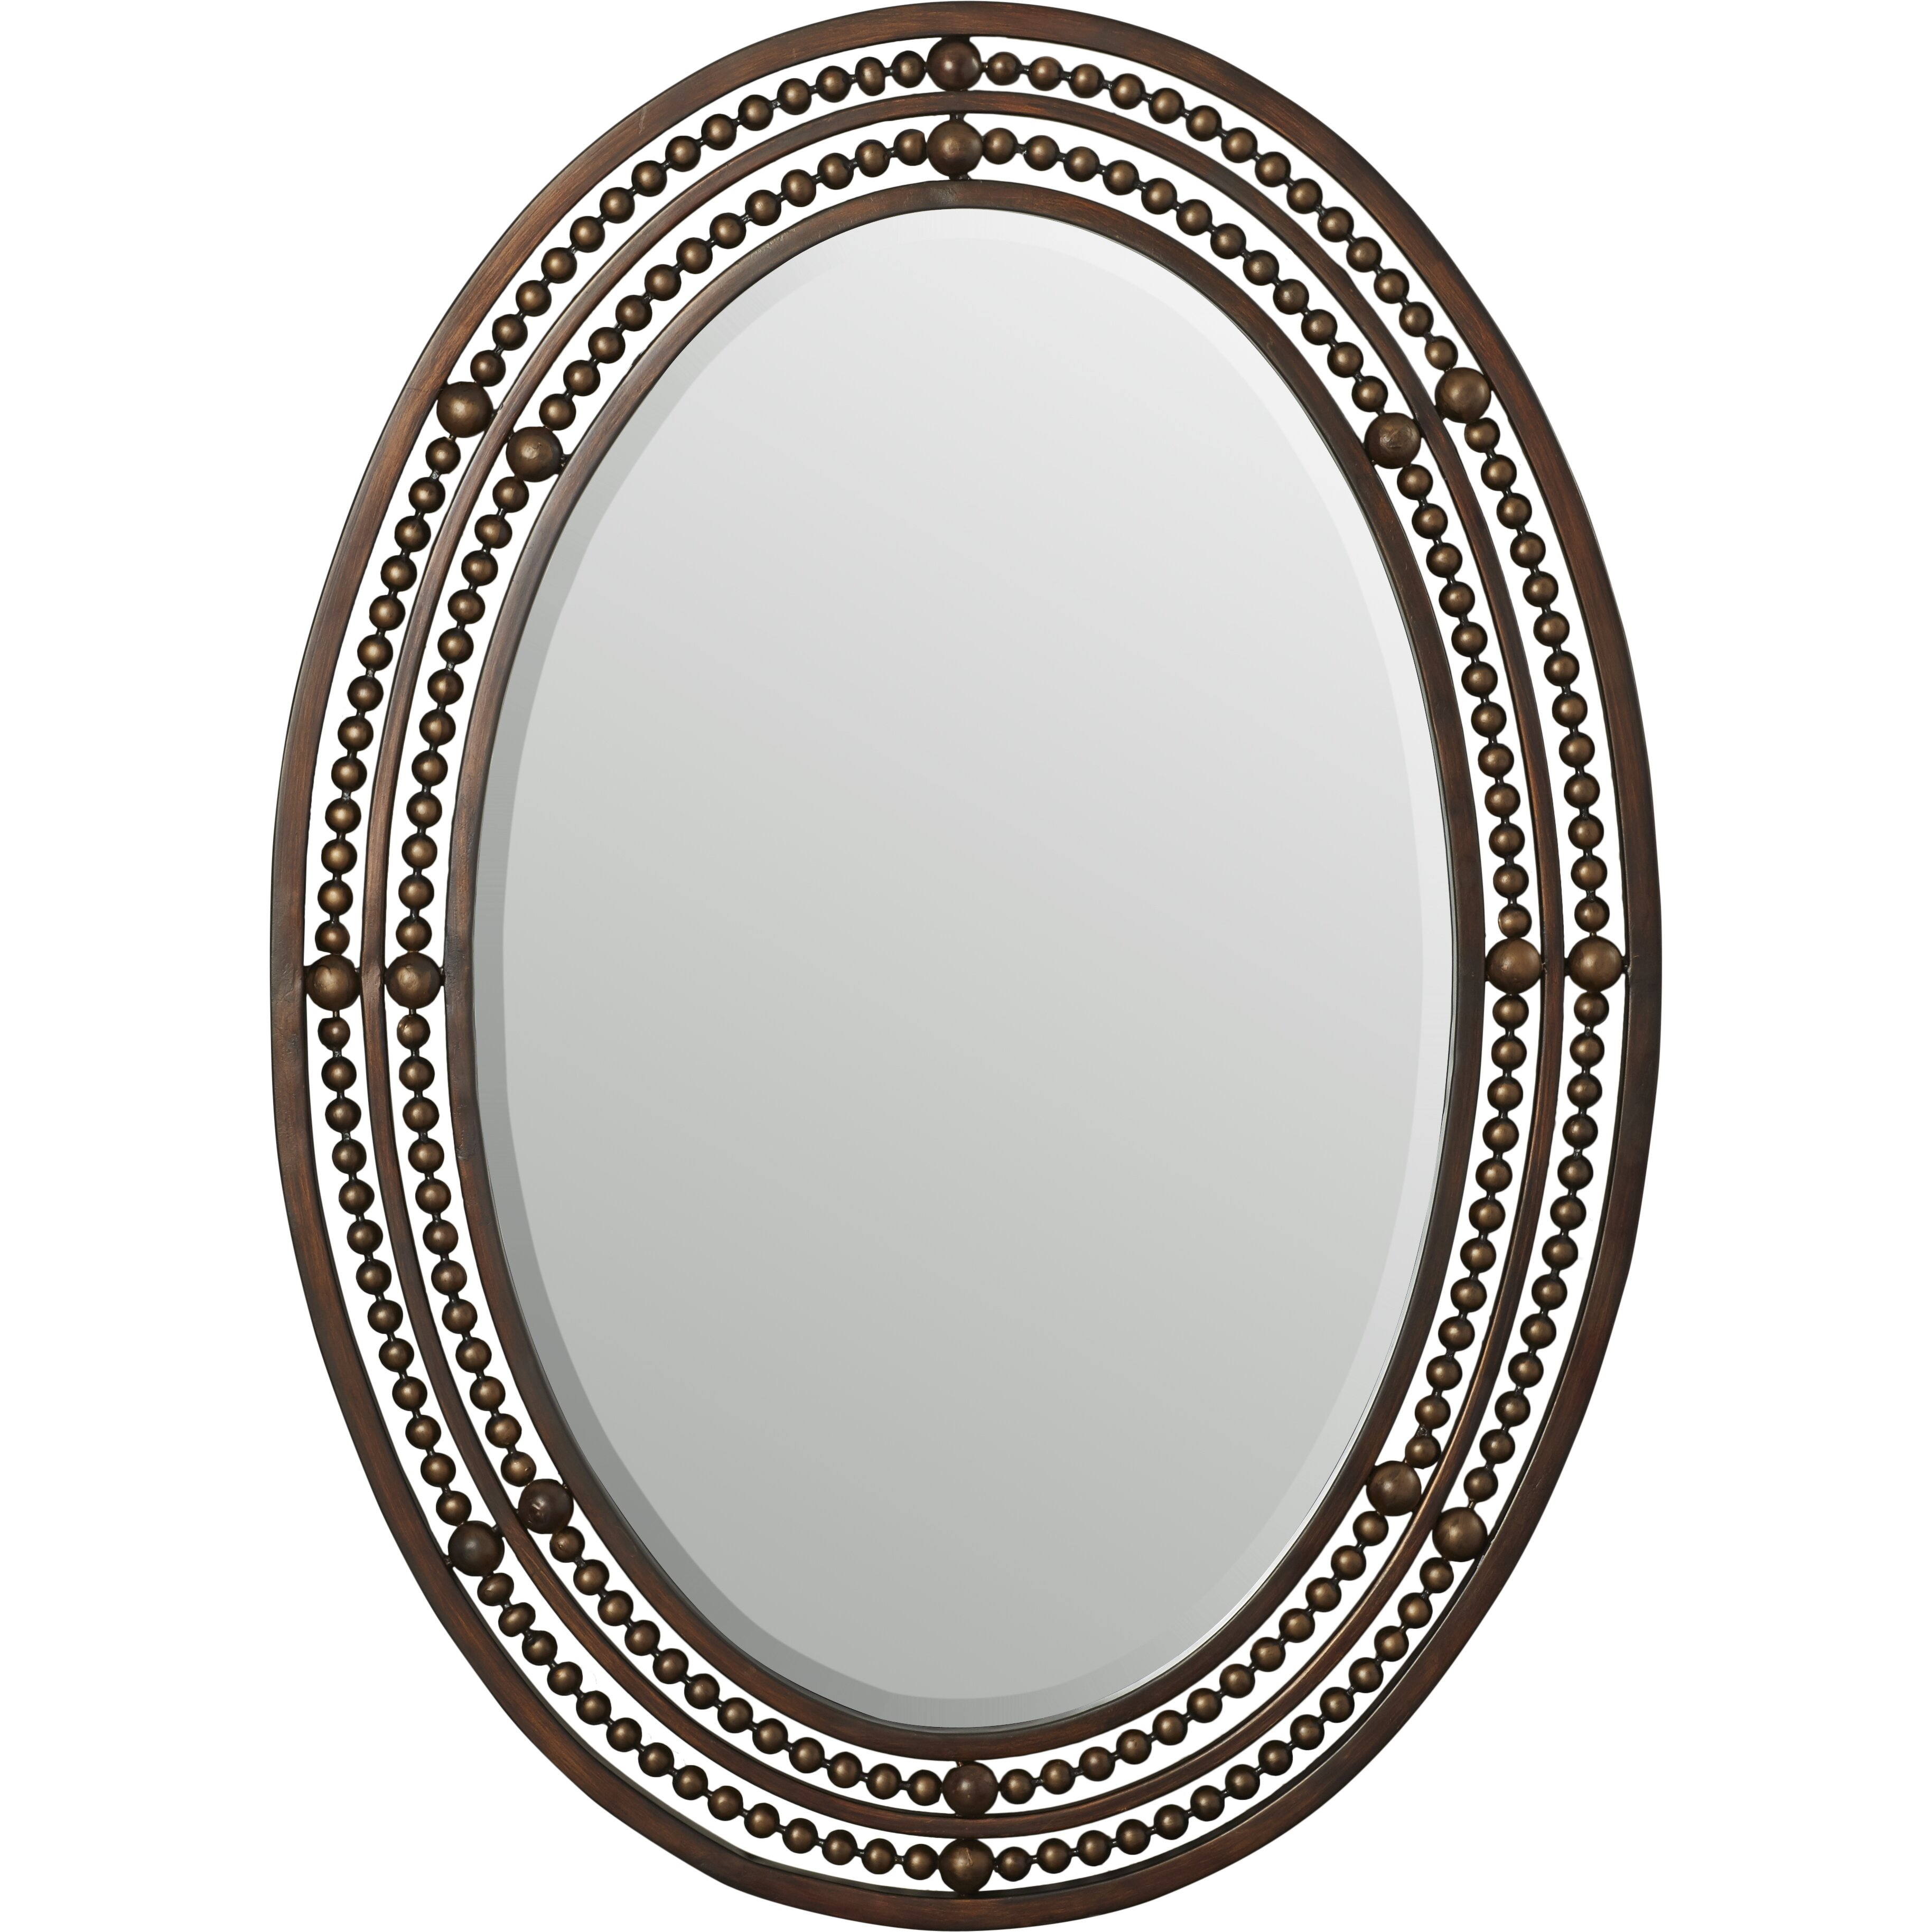 World menagerie oval wall mirror reviews wayfair for Oval wall mirror